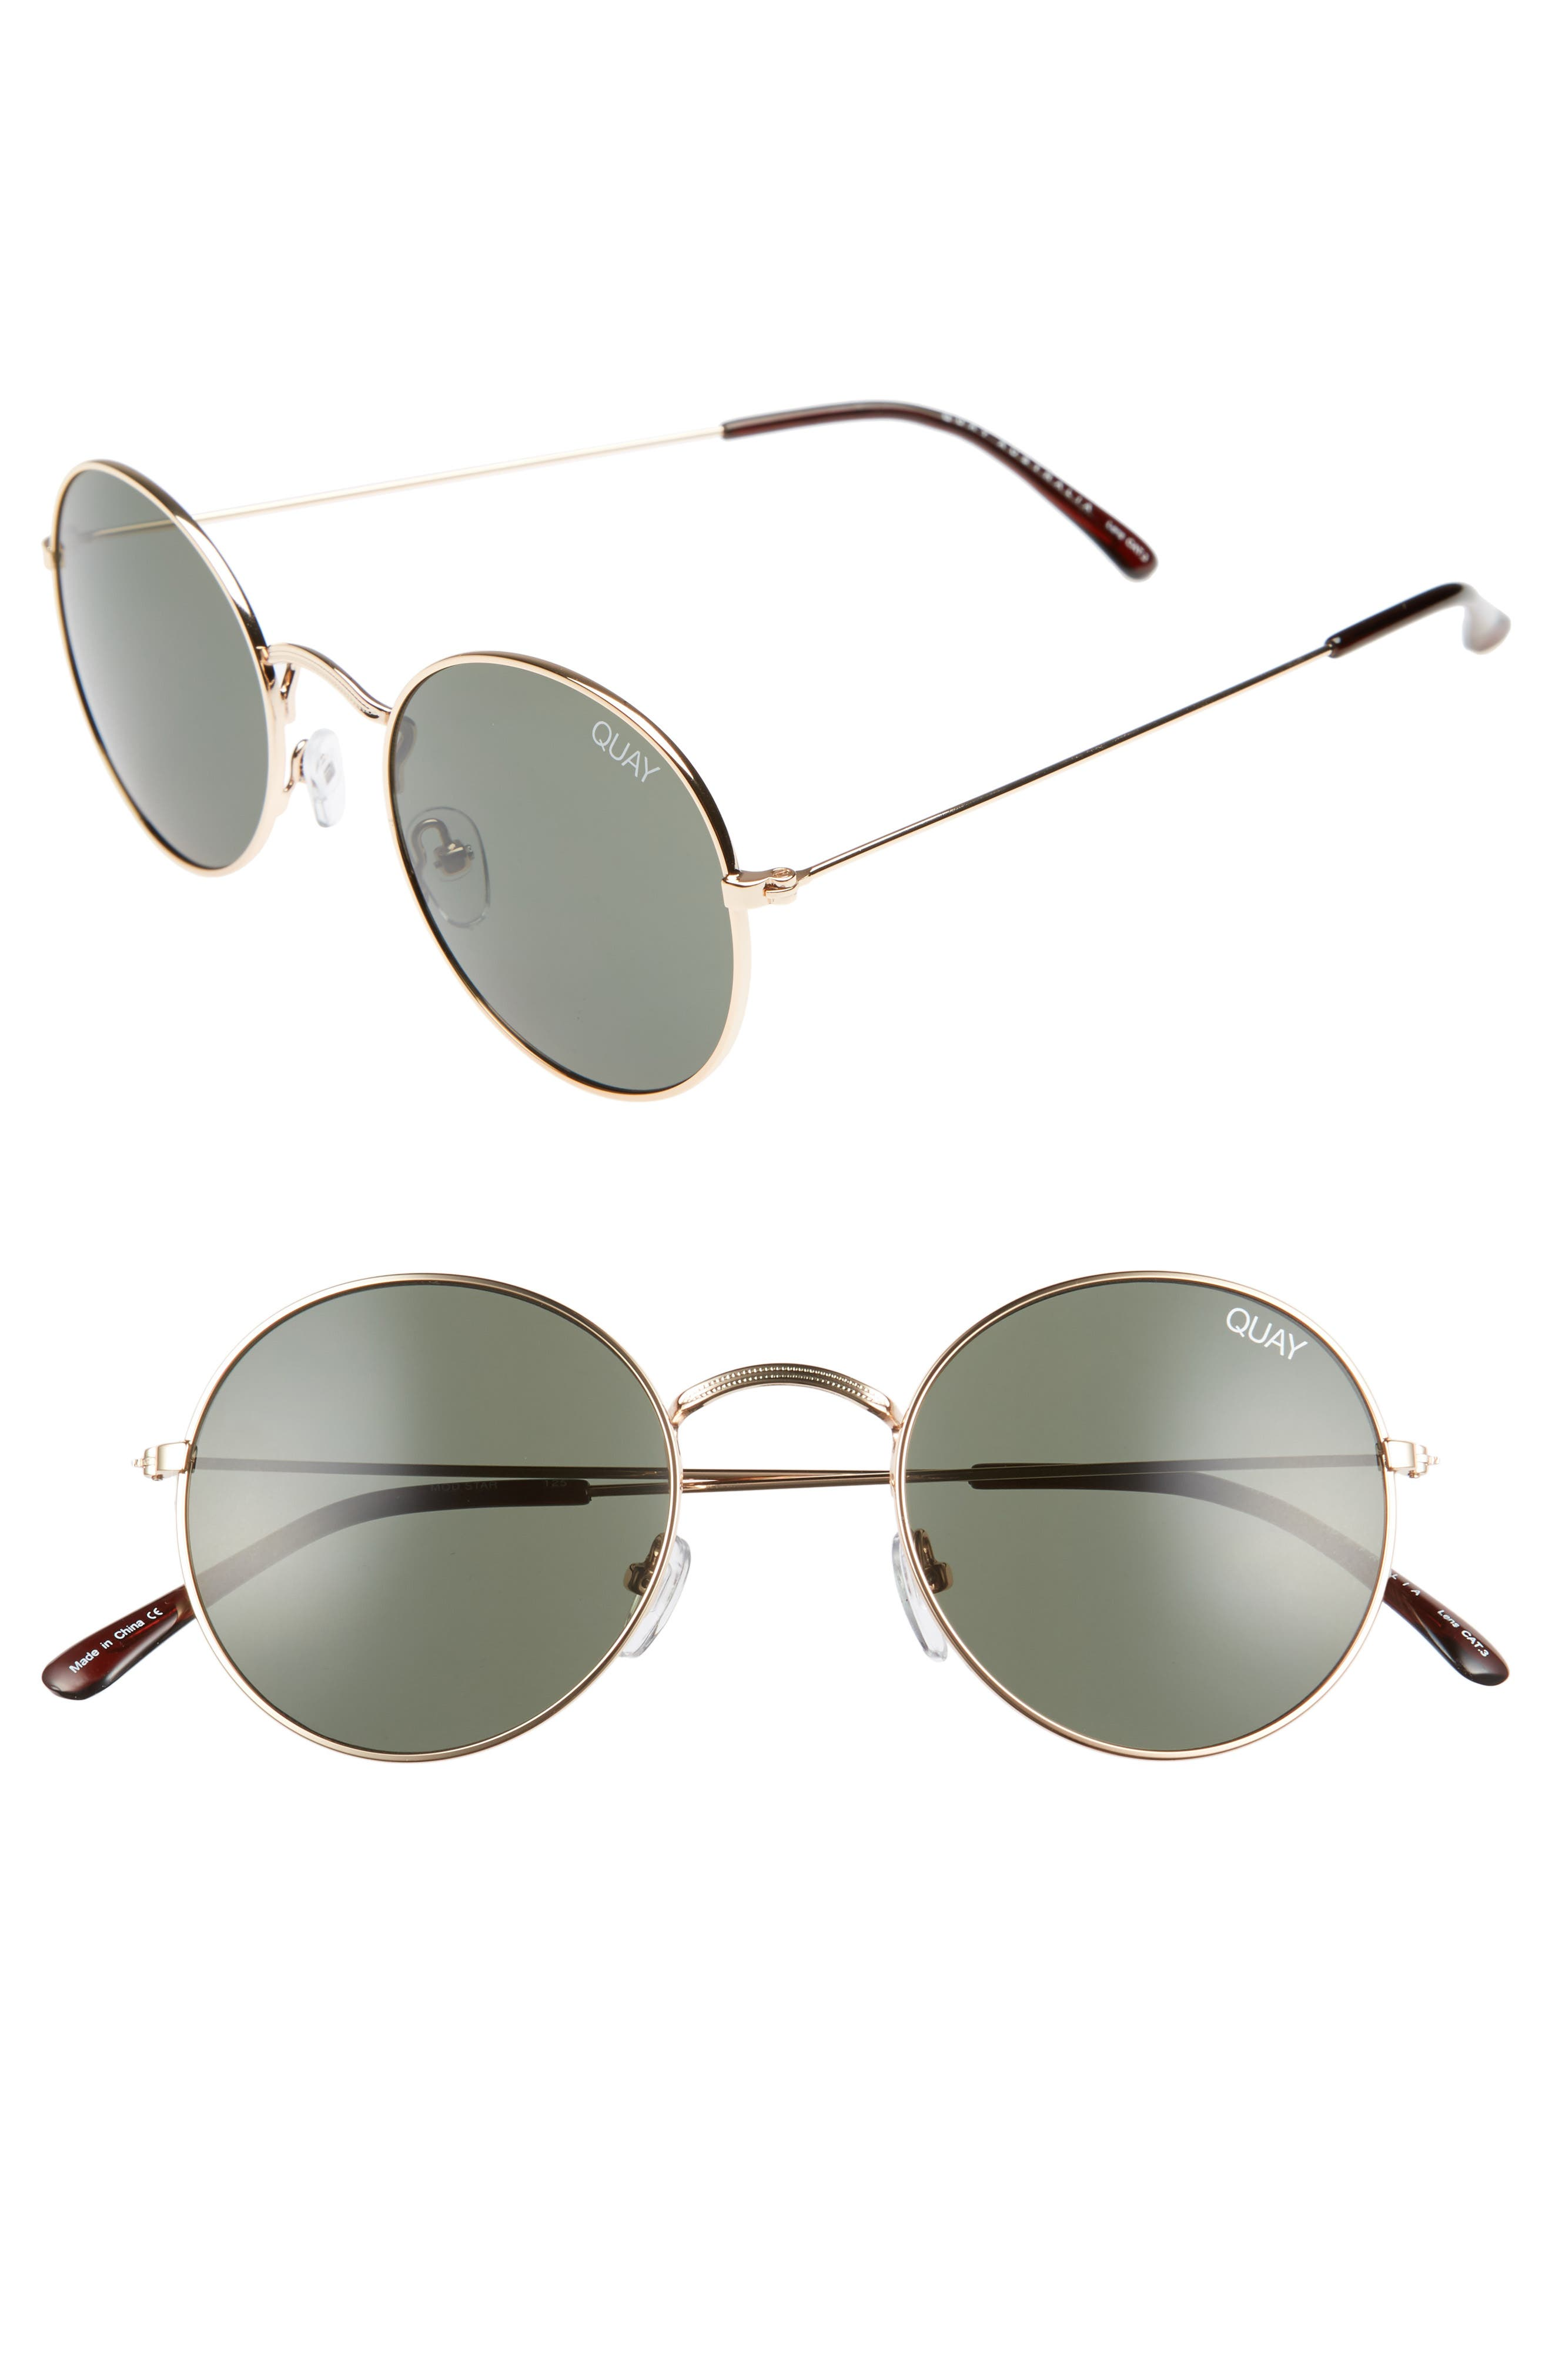 Quay Australia 50mm Mod Star Round Sunglasses